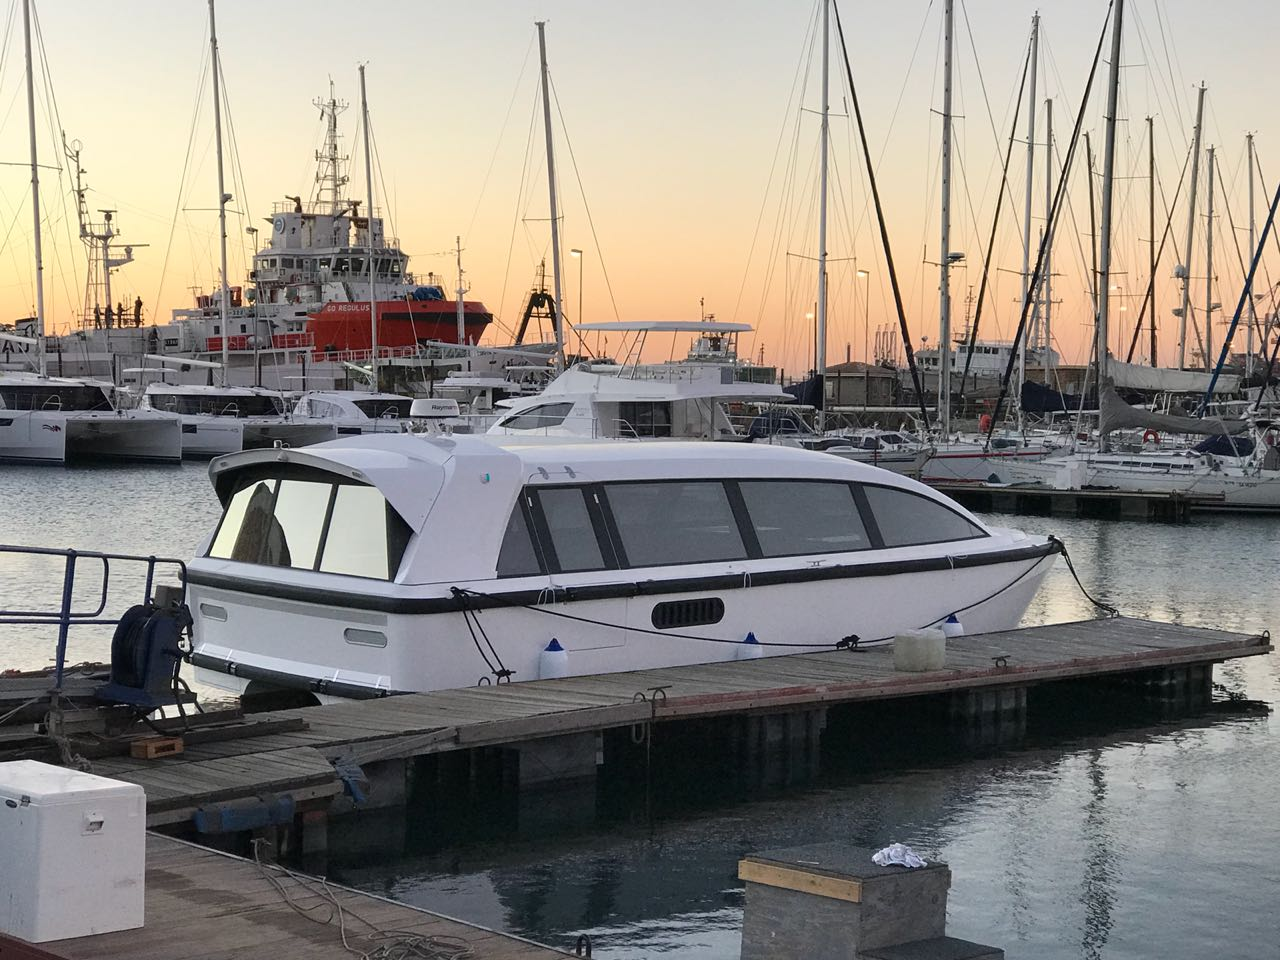 High speed transport ferry in Cape Town, South Africa, built by Stealth Yachts.The joystick control system was installed by Control Engineering in August 2018.